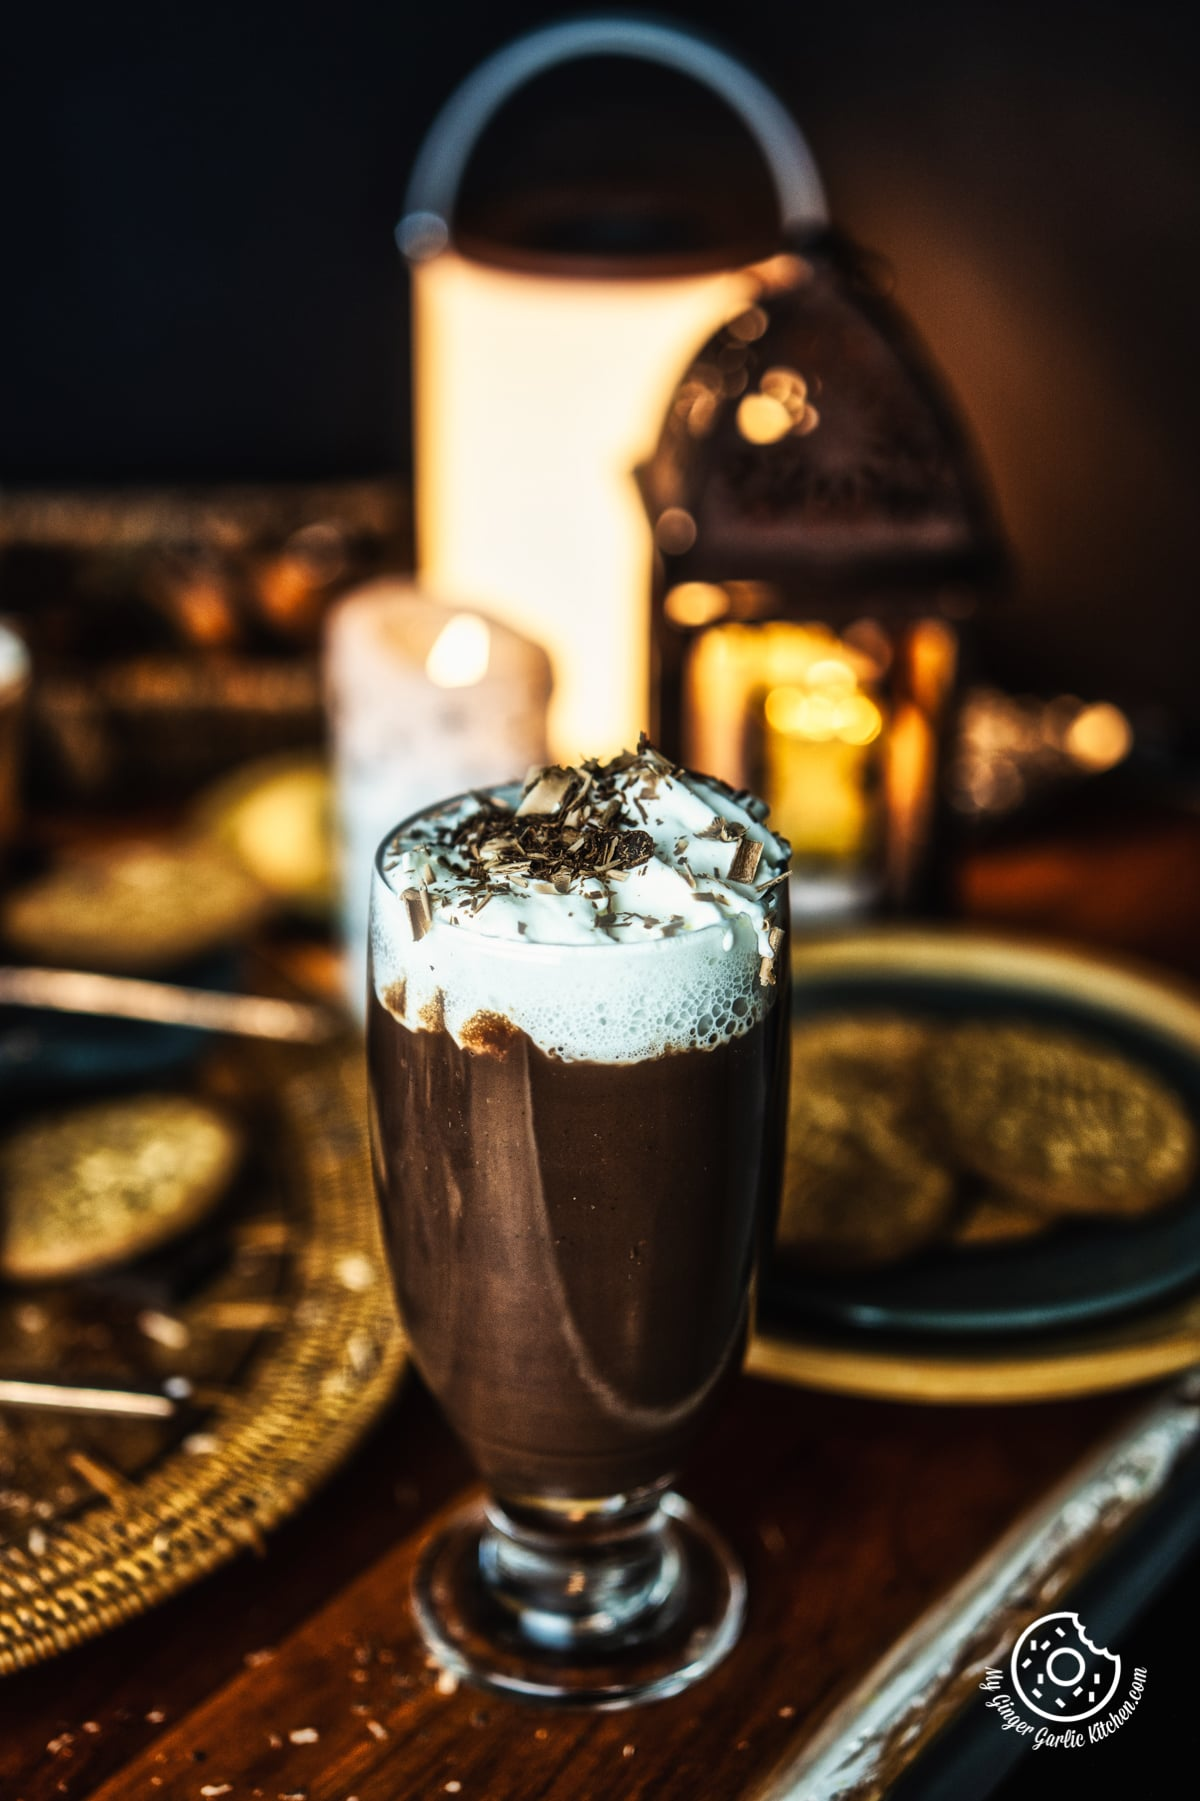 Italian Hot Chocolate with whipped cream and chocolate shavings in a transparent tall glass